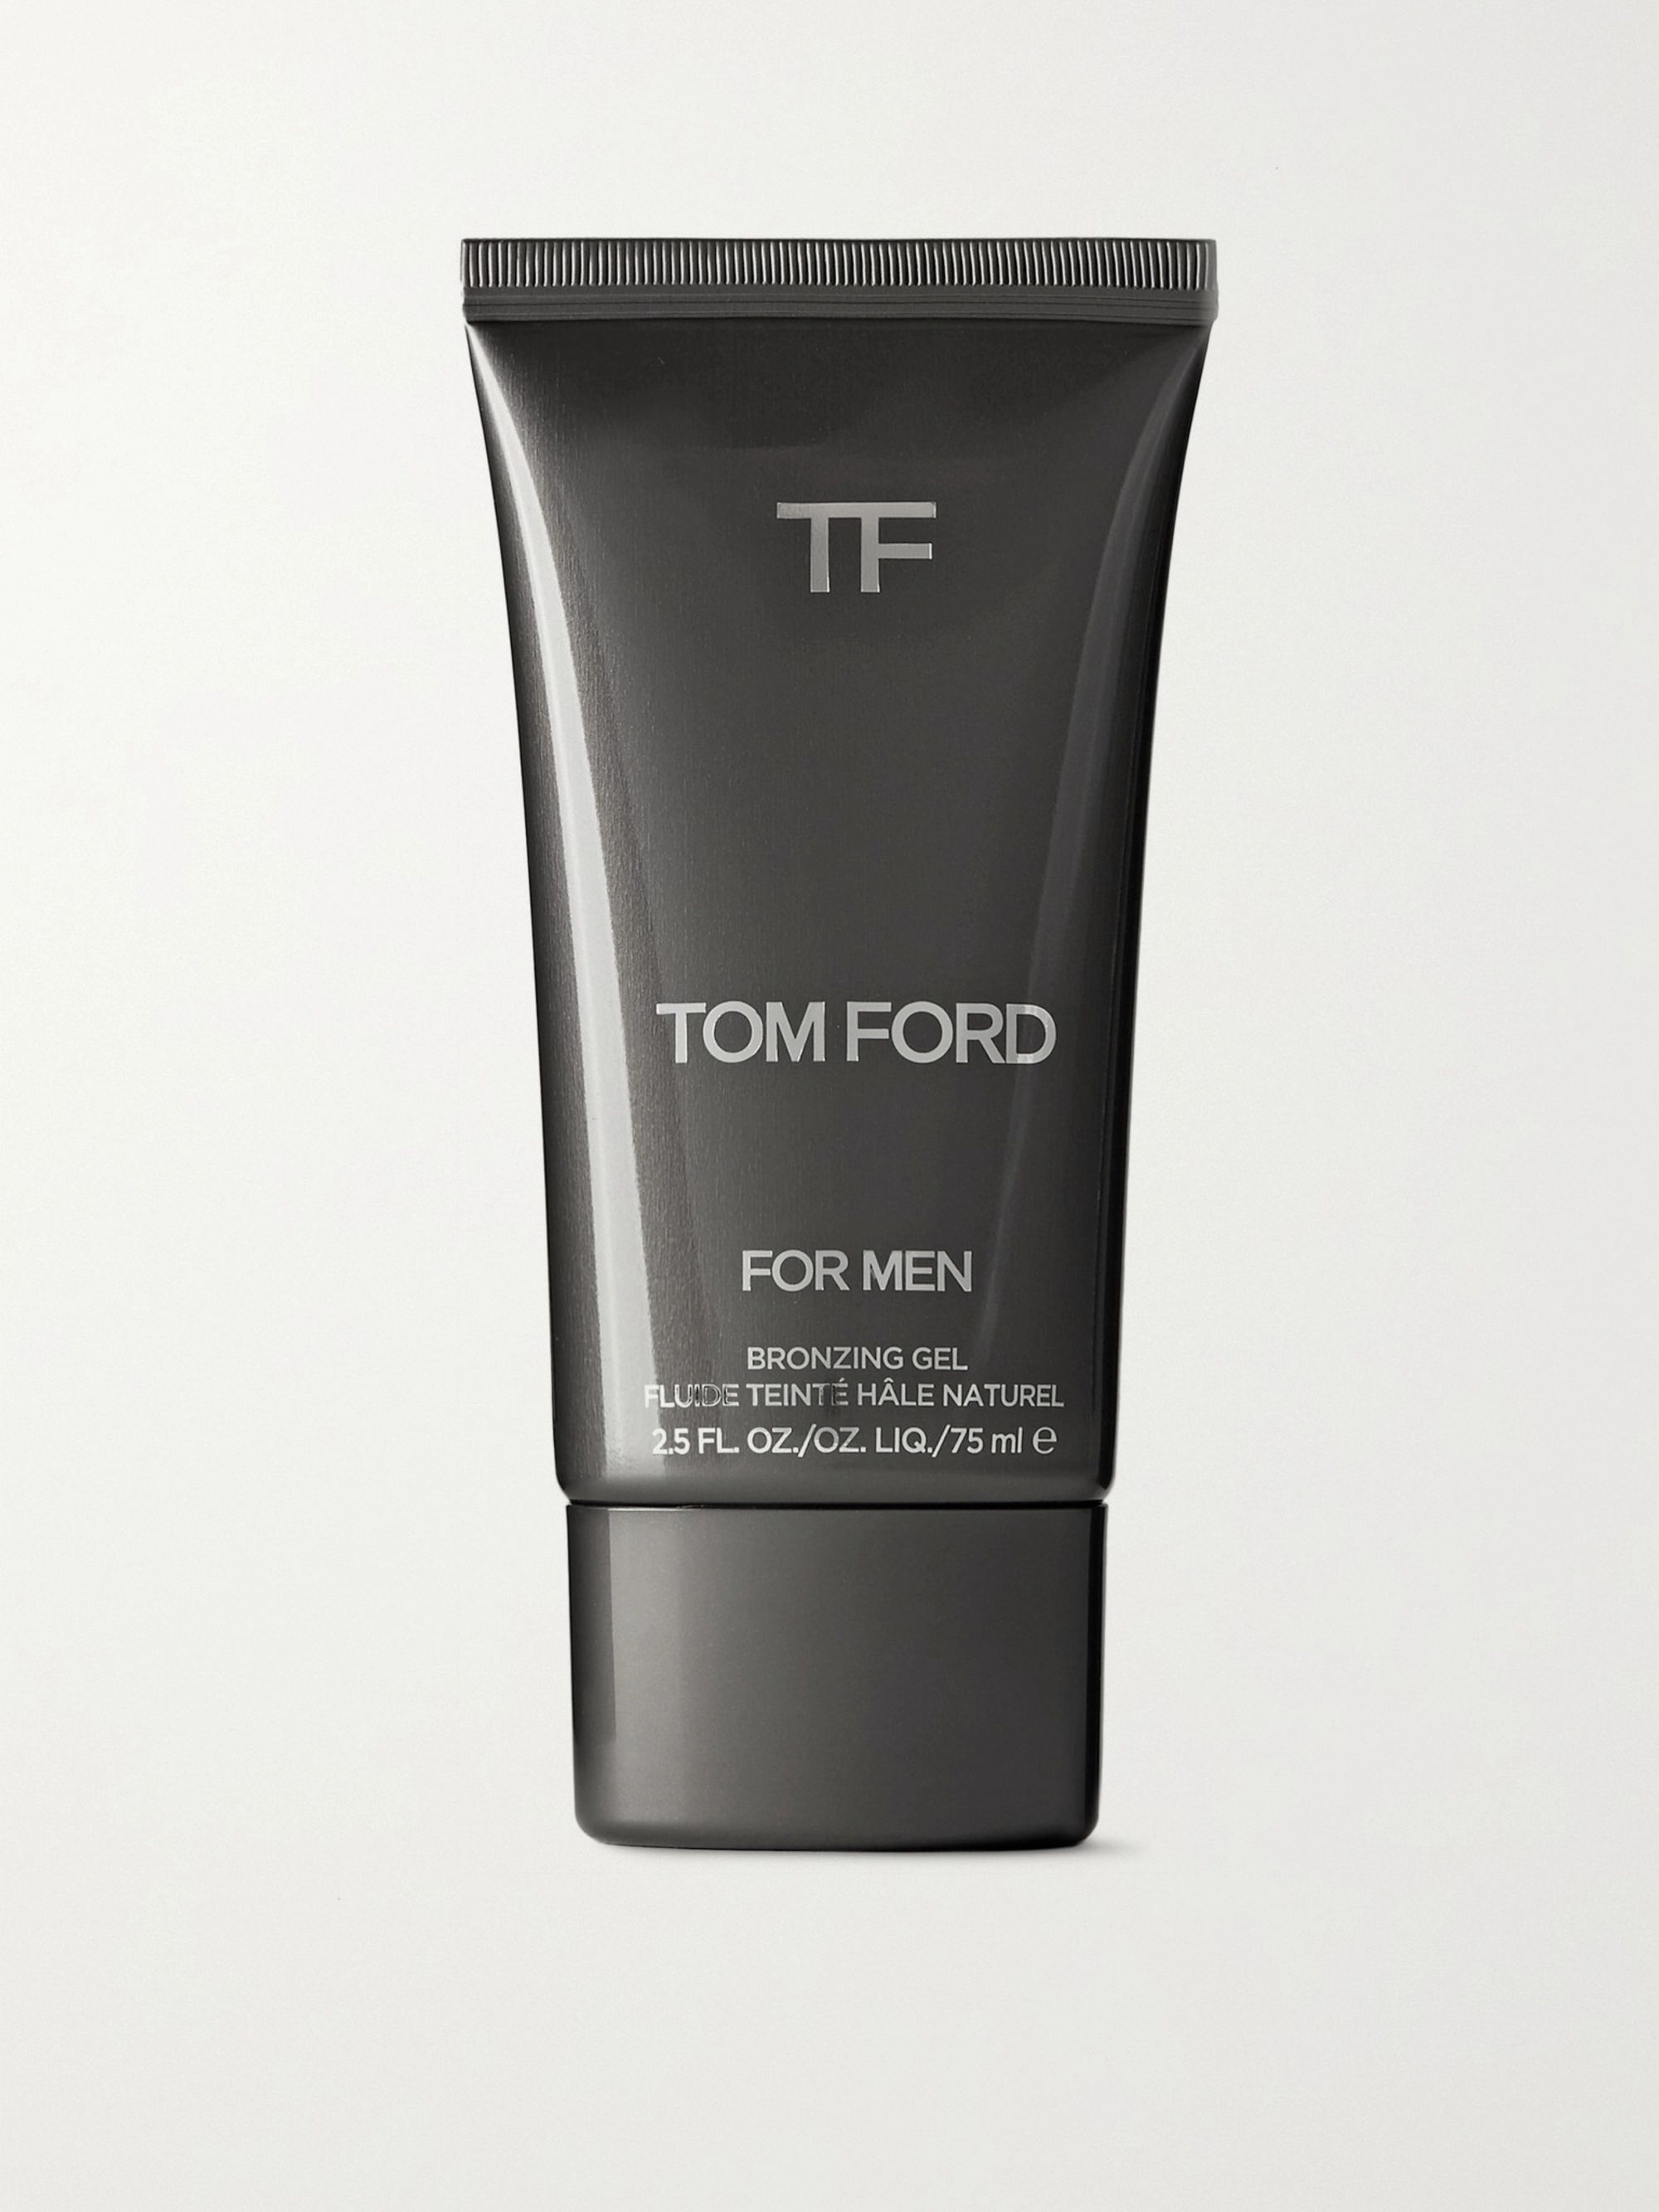 TOM FORD BEAUTY Bronzing Gel, 75ml